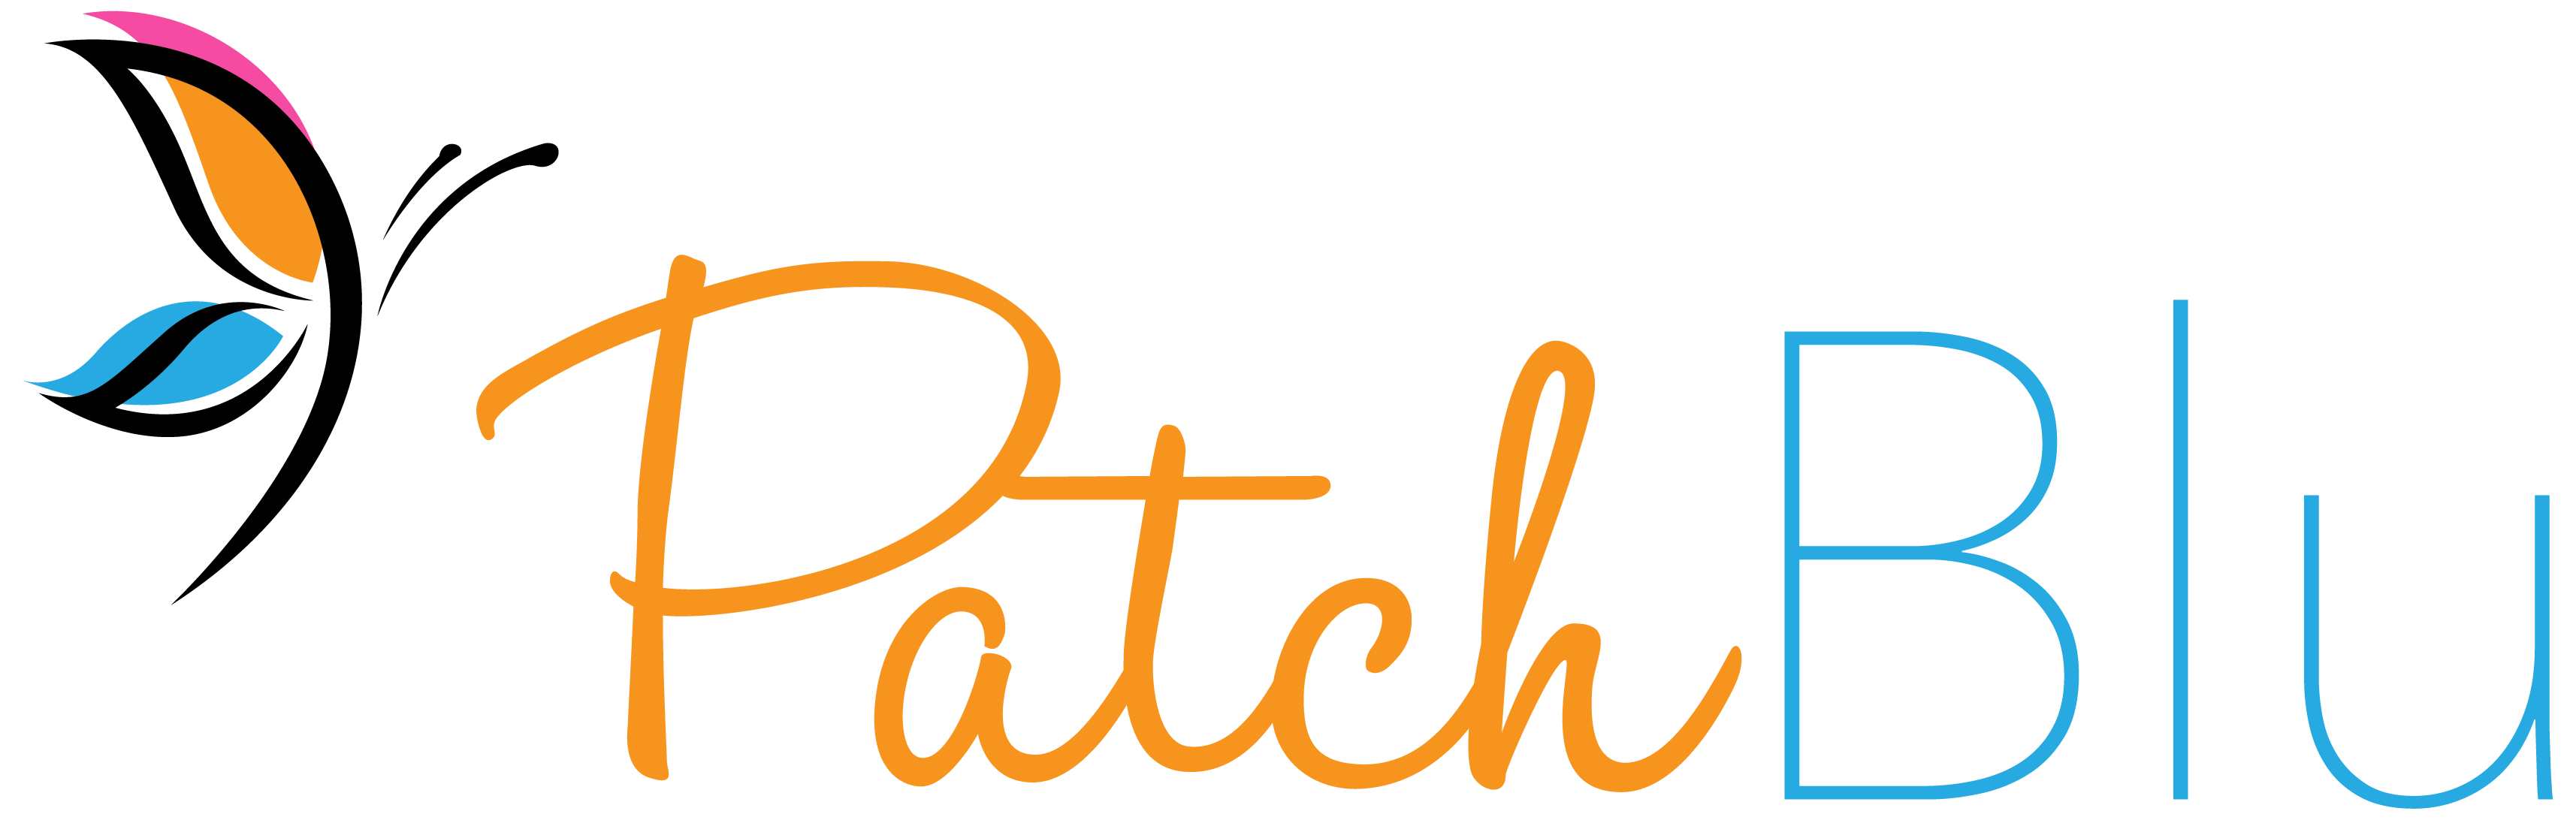 Loja de patches | PatchBlu